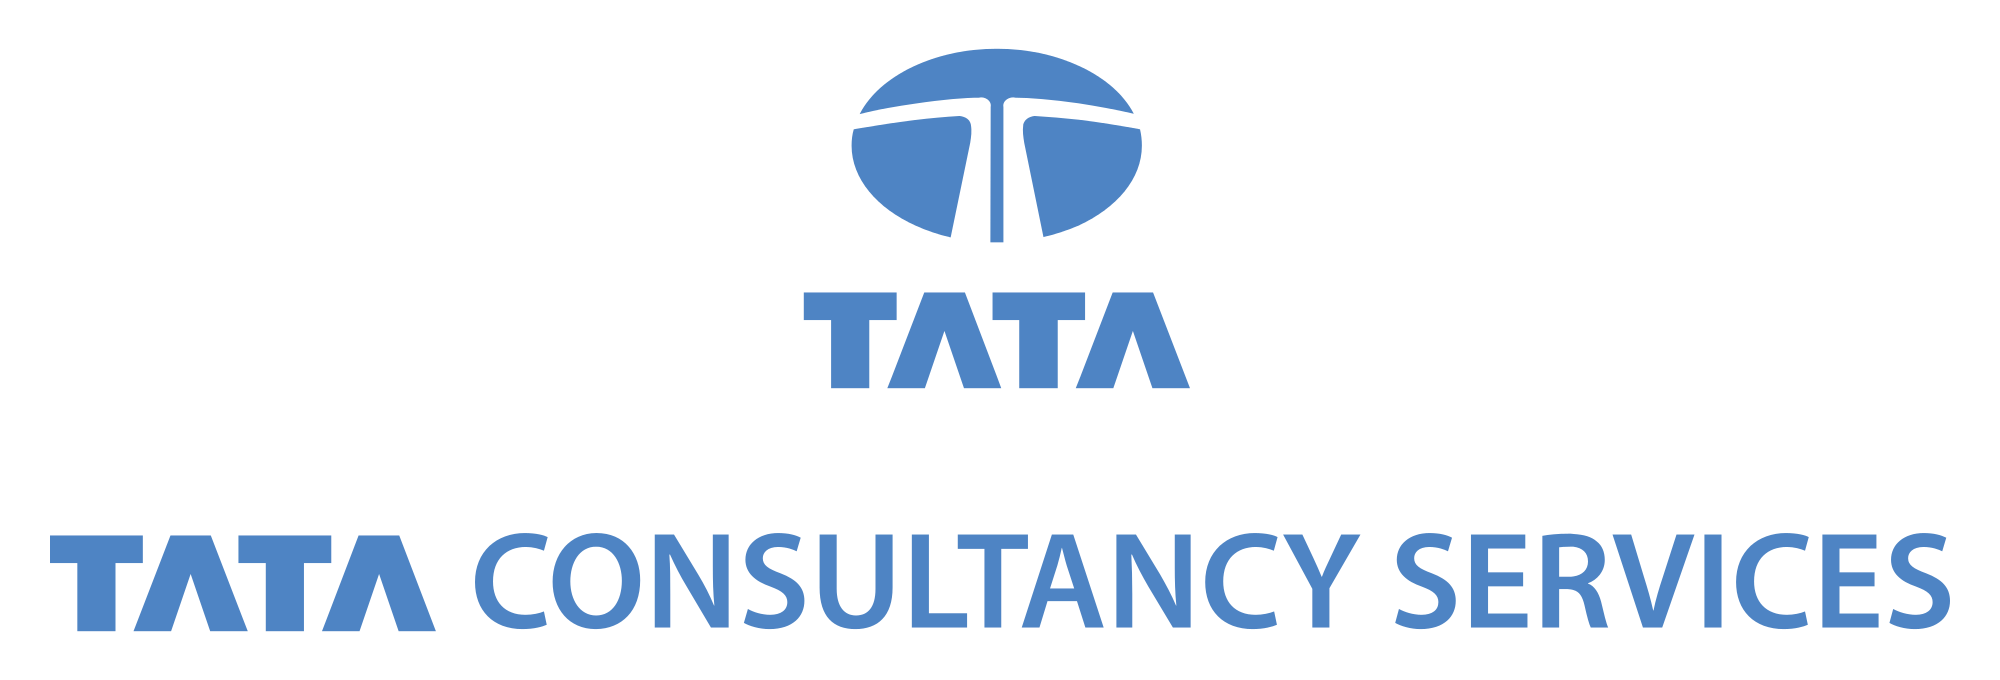 Tata Consultancy Services Tcs Bse 532540 Nse Tcs A Leading